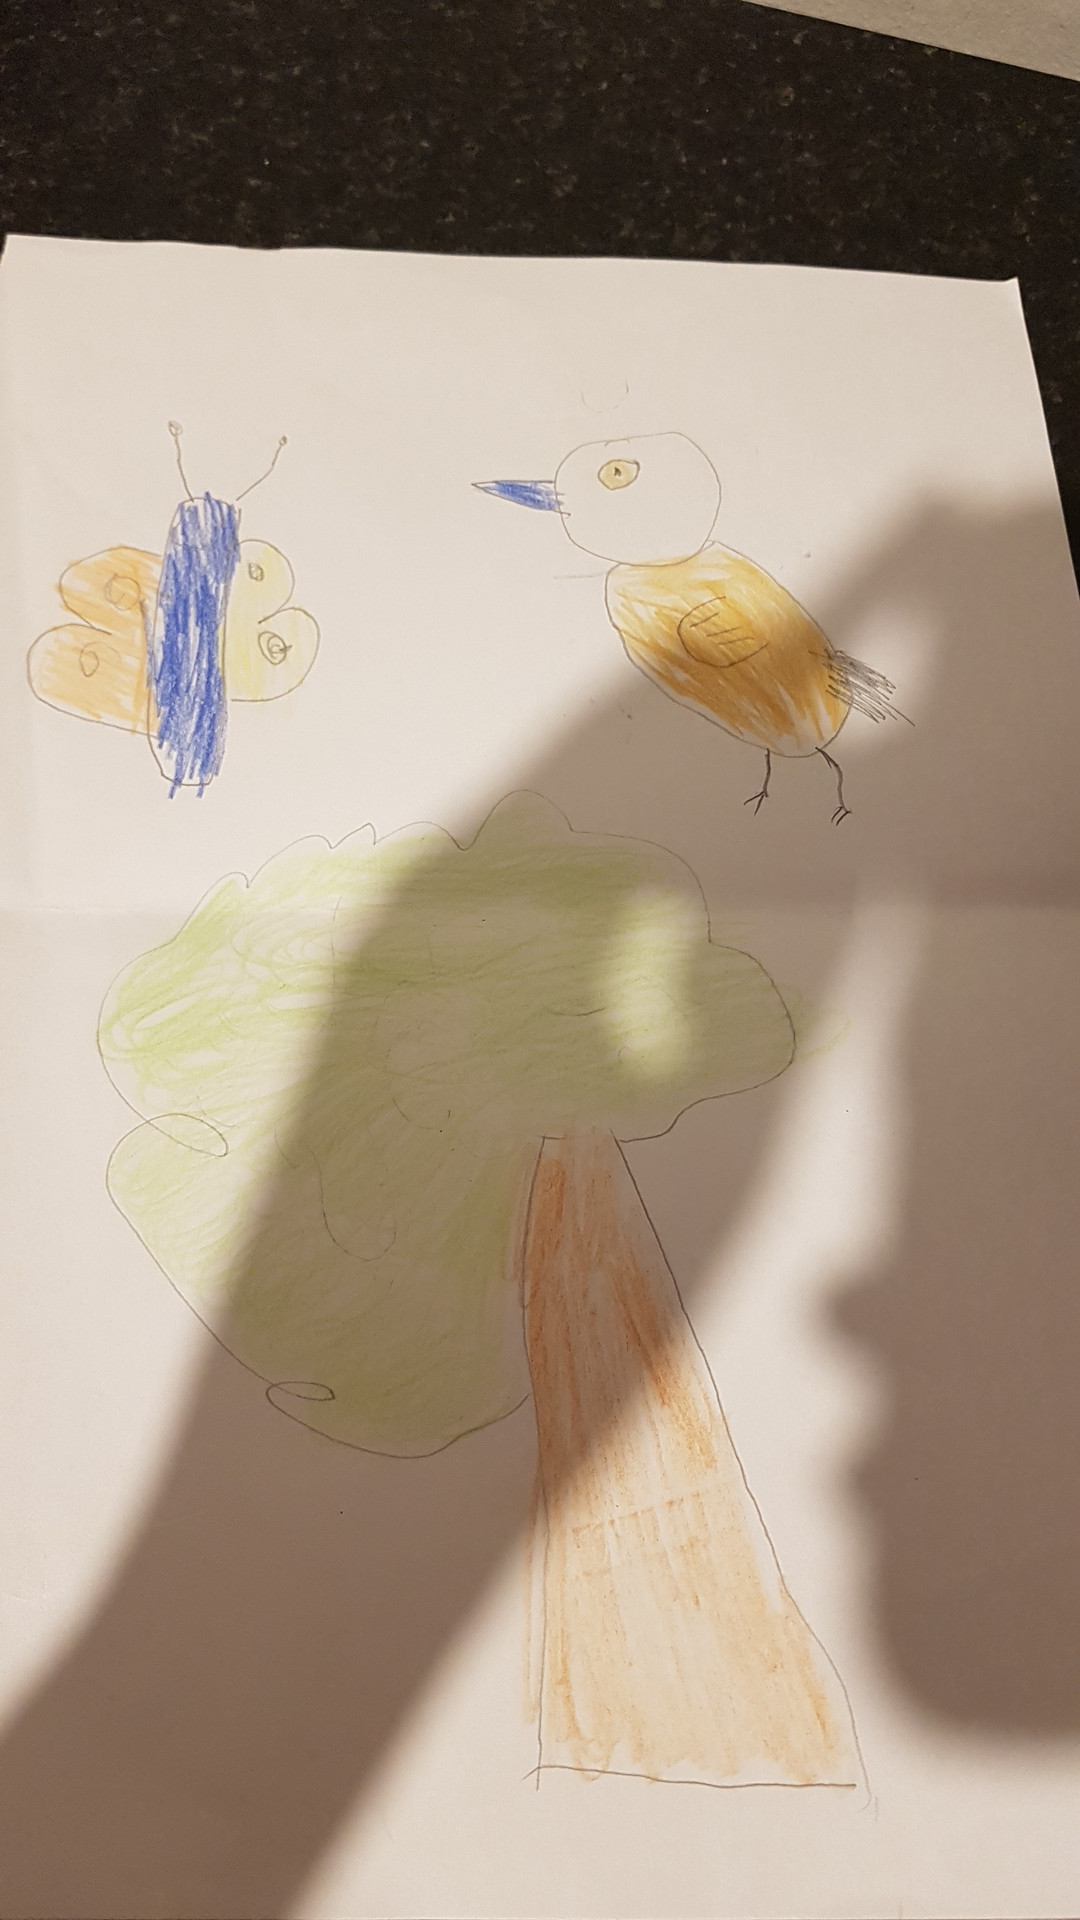 Leyton's picture